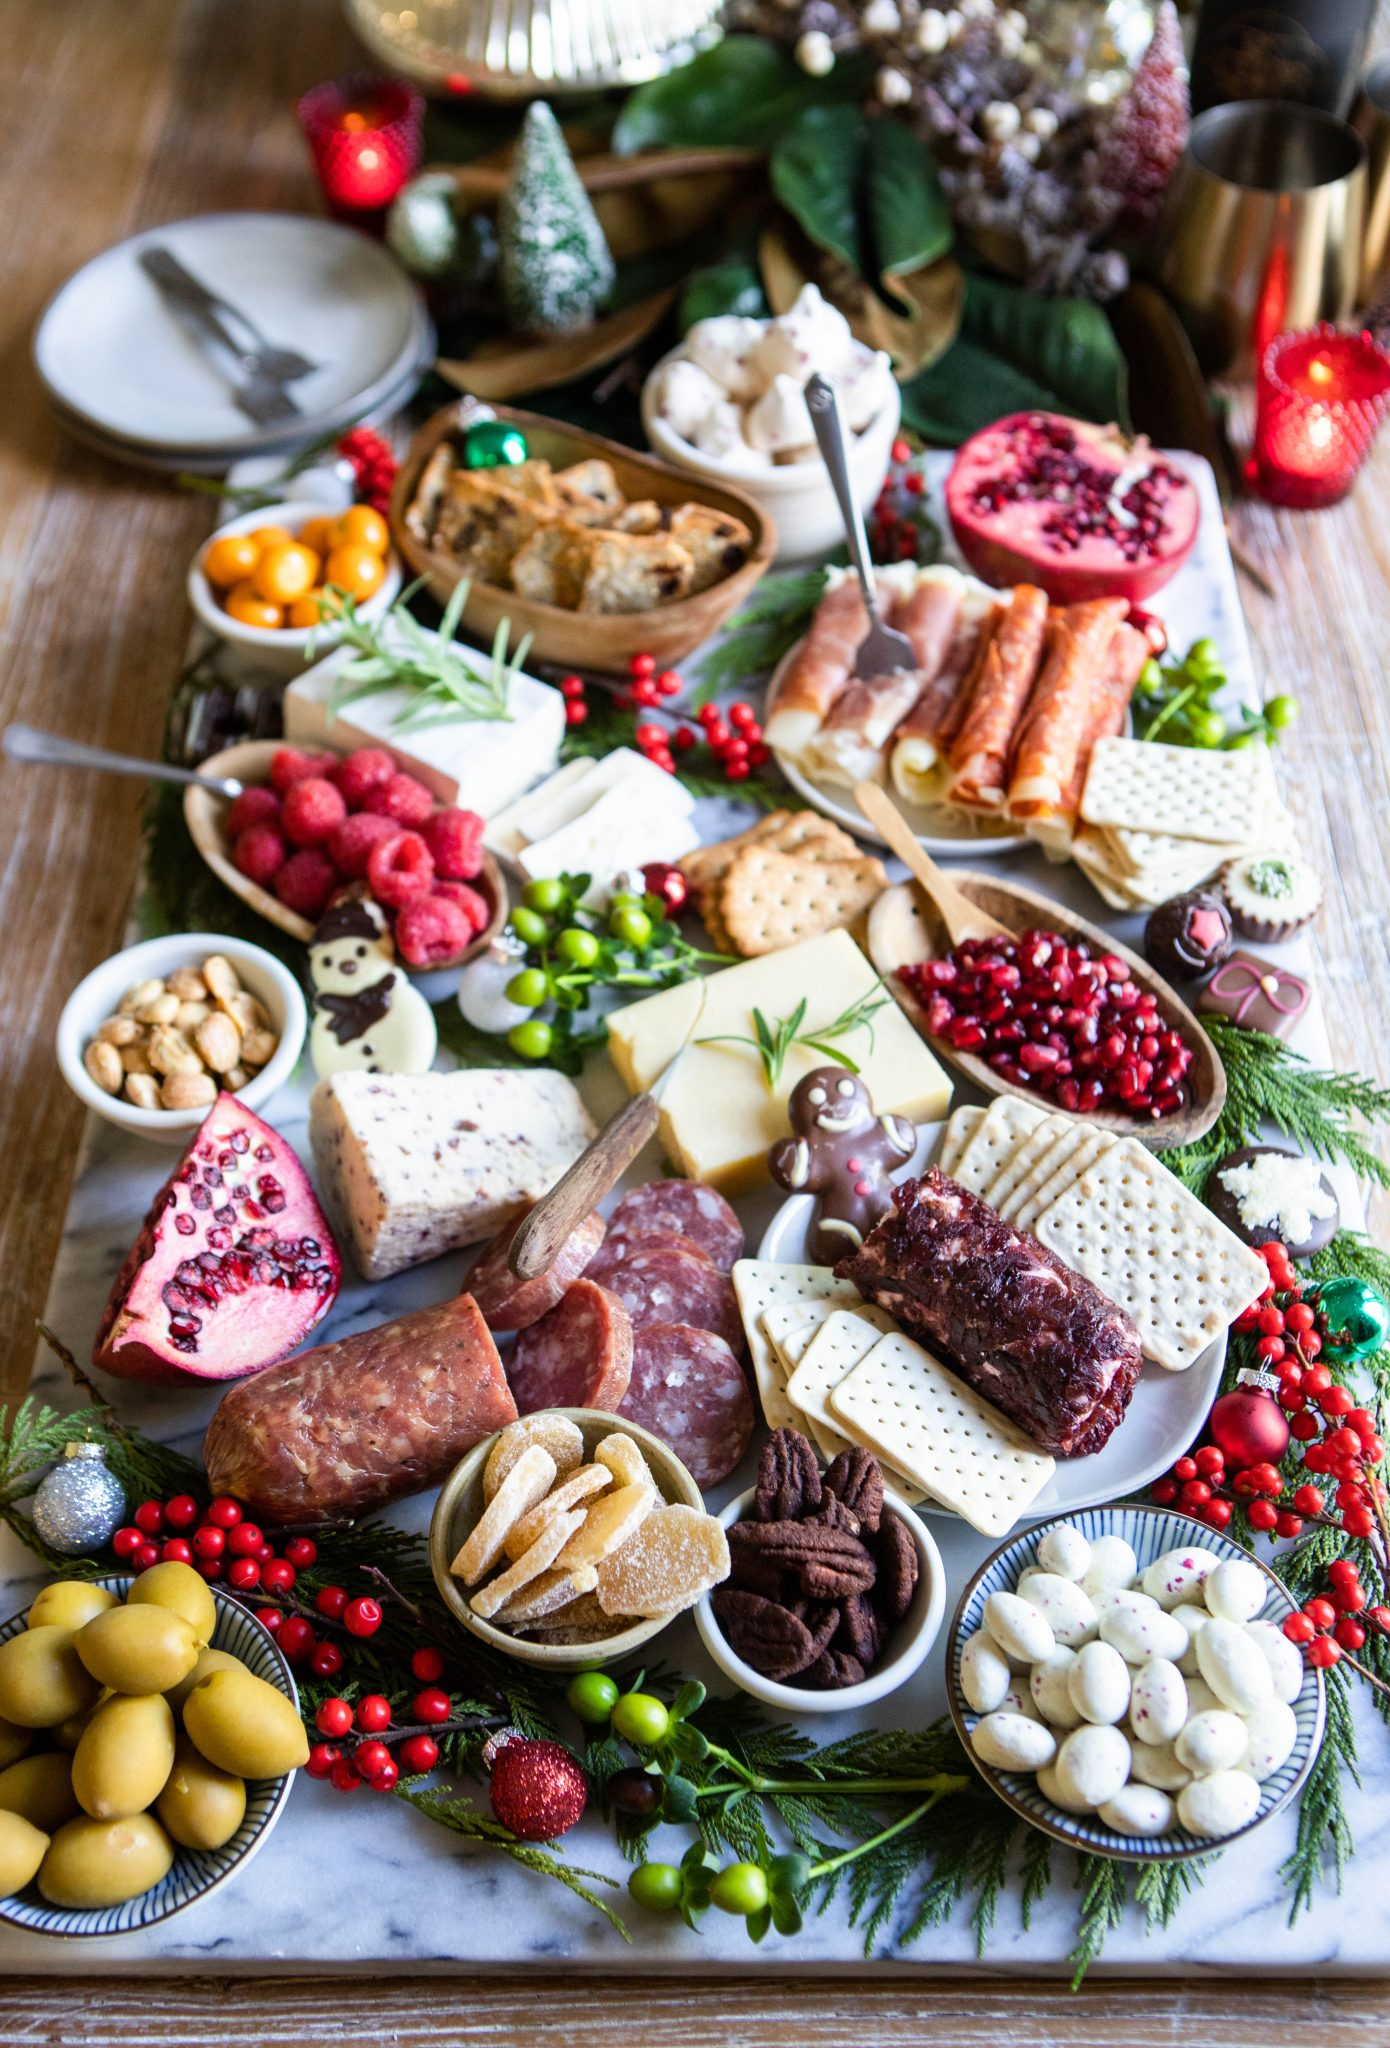 cured meats, cheeses, pomegranates and other savory foods on a marble board